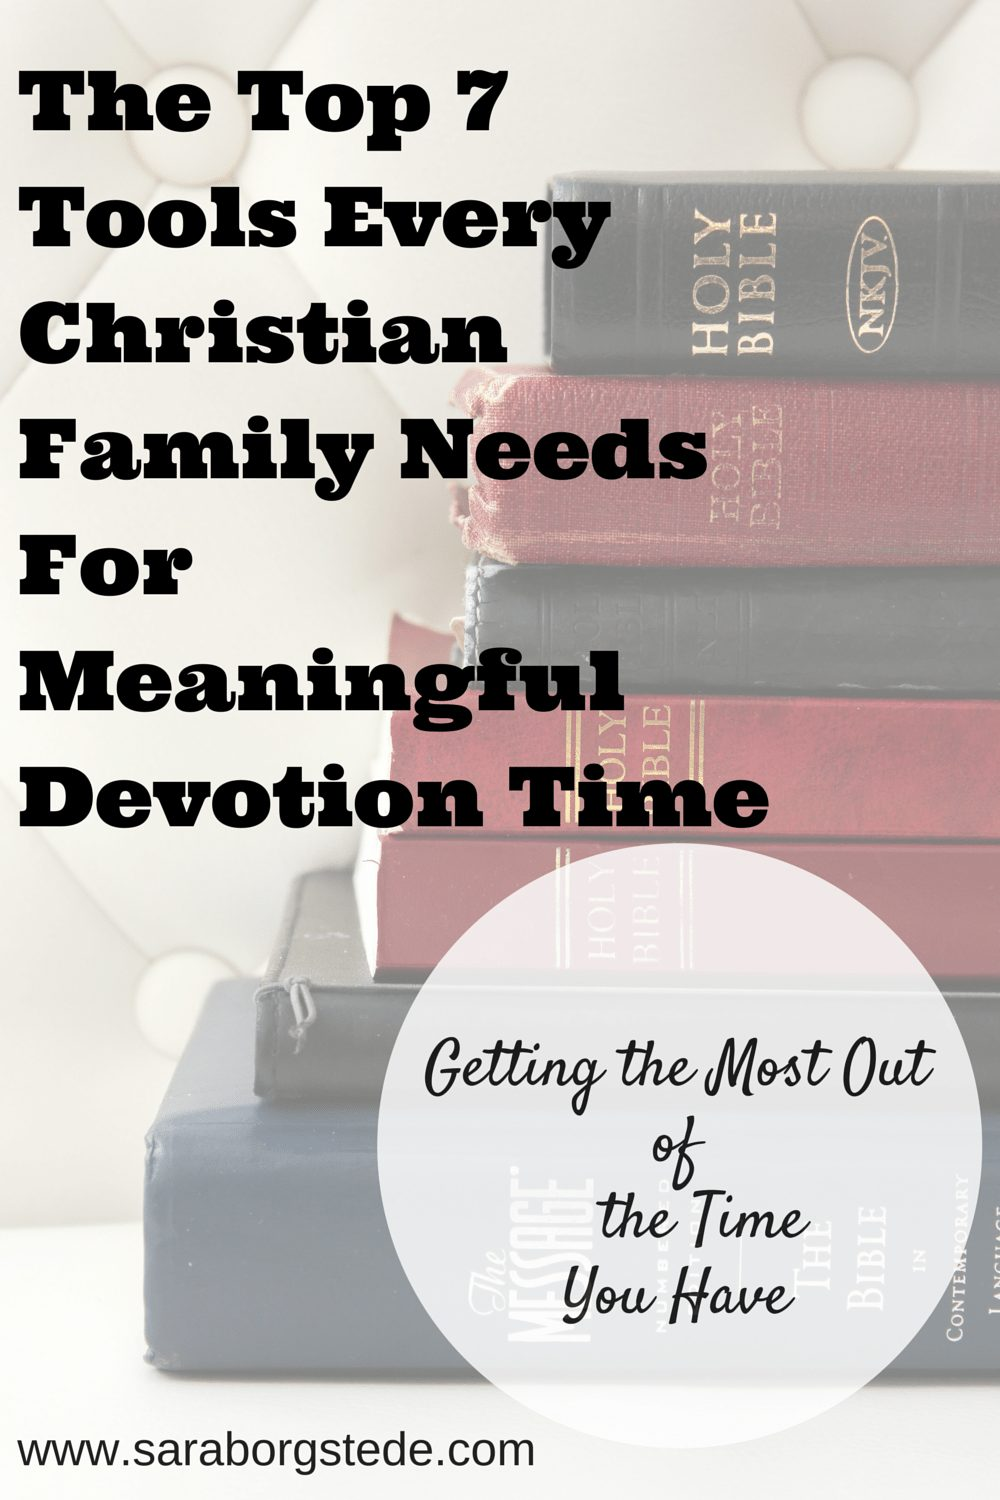 The Top 7 Tools Every Christian FamilyFB